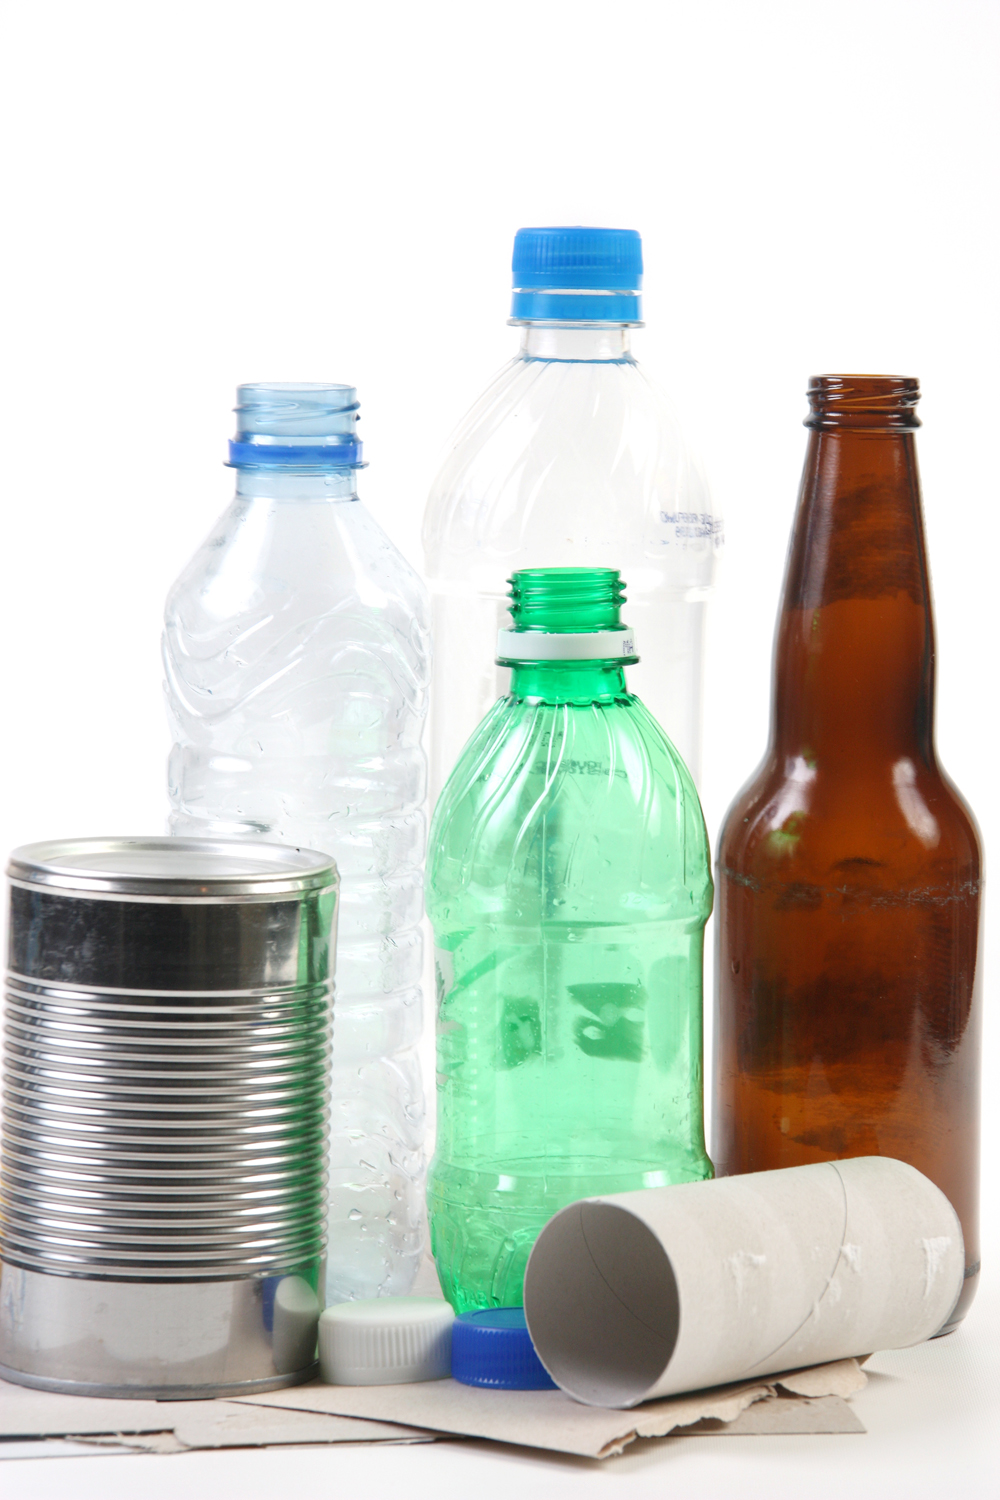 Participants in the curbside recycling program can recycle products like paper, plastic bottles, glass bottles, and bi-metal cans.